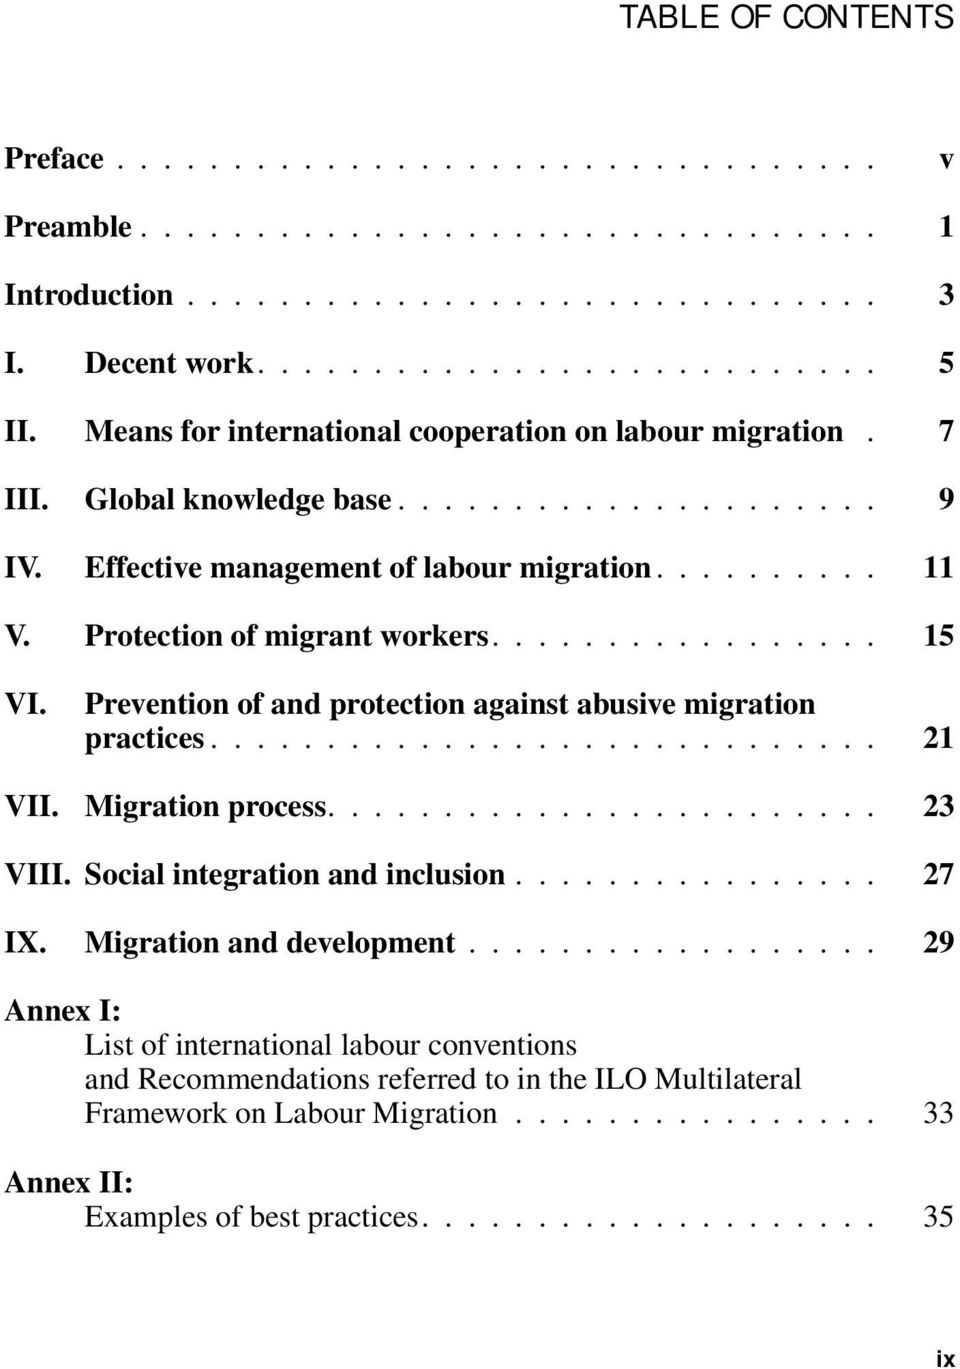 ................ 15 VI. Prevention of and protection against abusive migration practices............................. 21 VII. Migration process........................ 23 VIII.